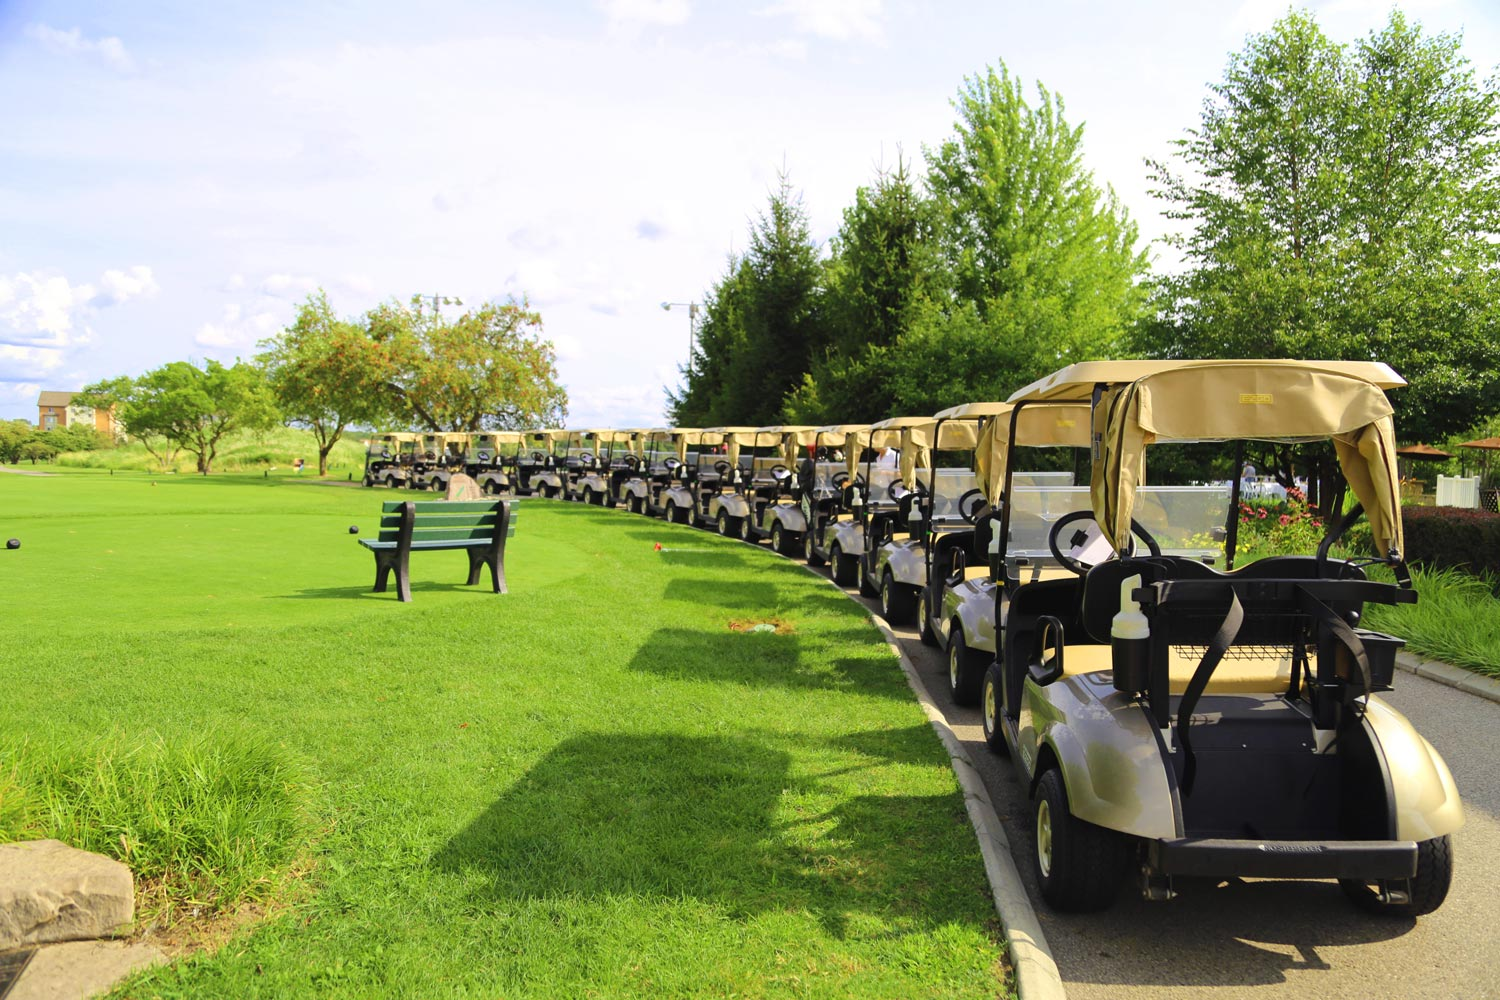 a row of golf carts